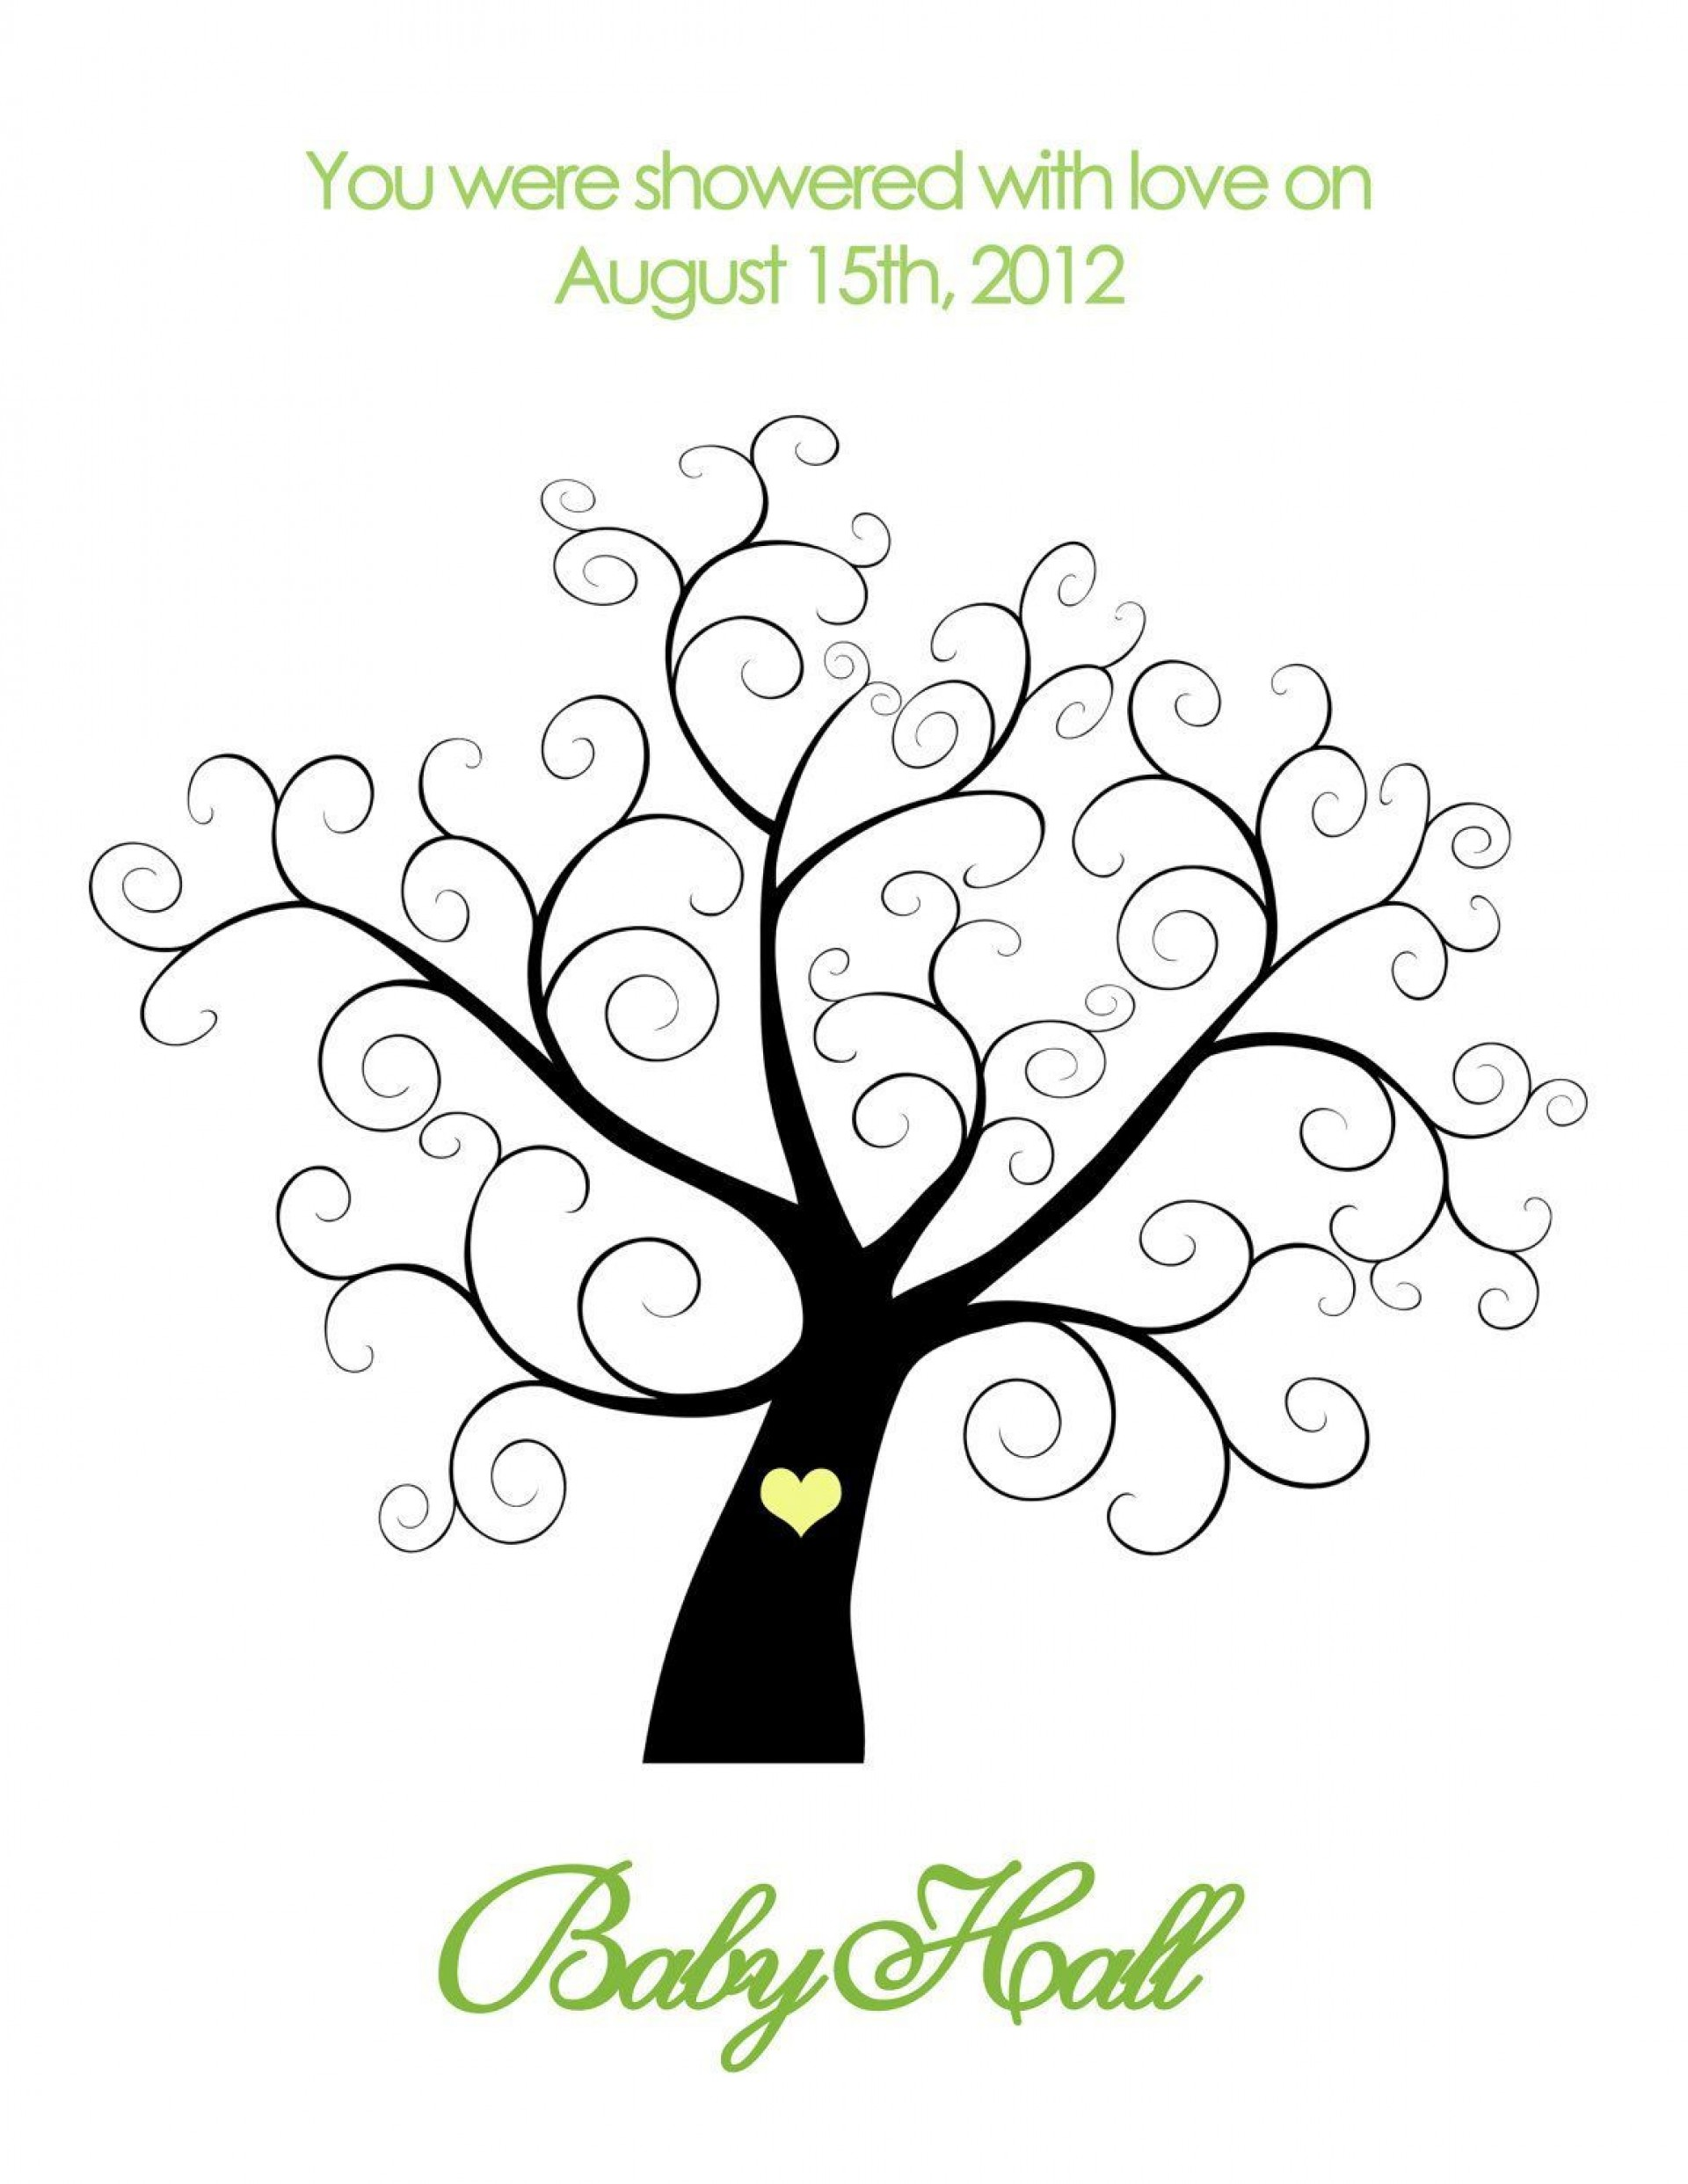 001 Outstanding Family Tree For Baby Book Template Design  Printable1920